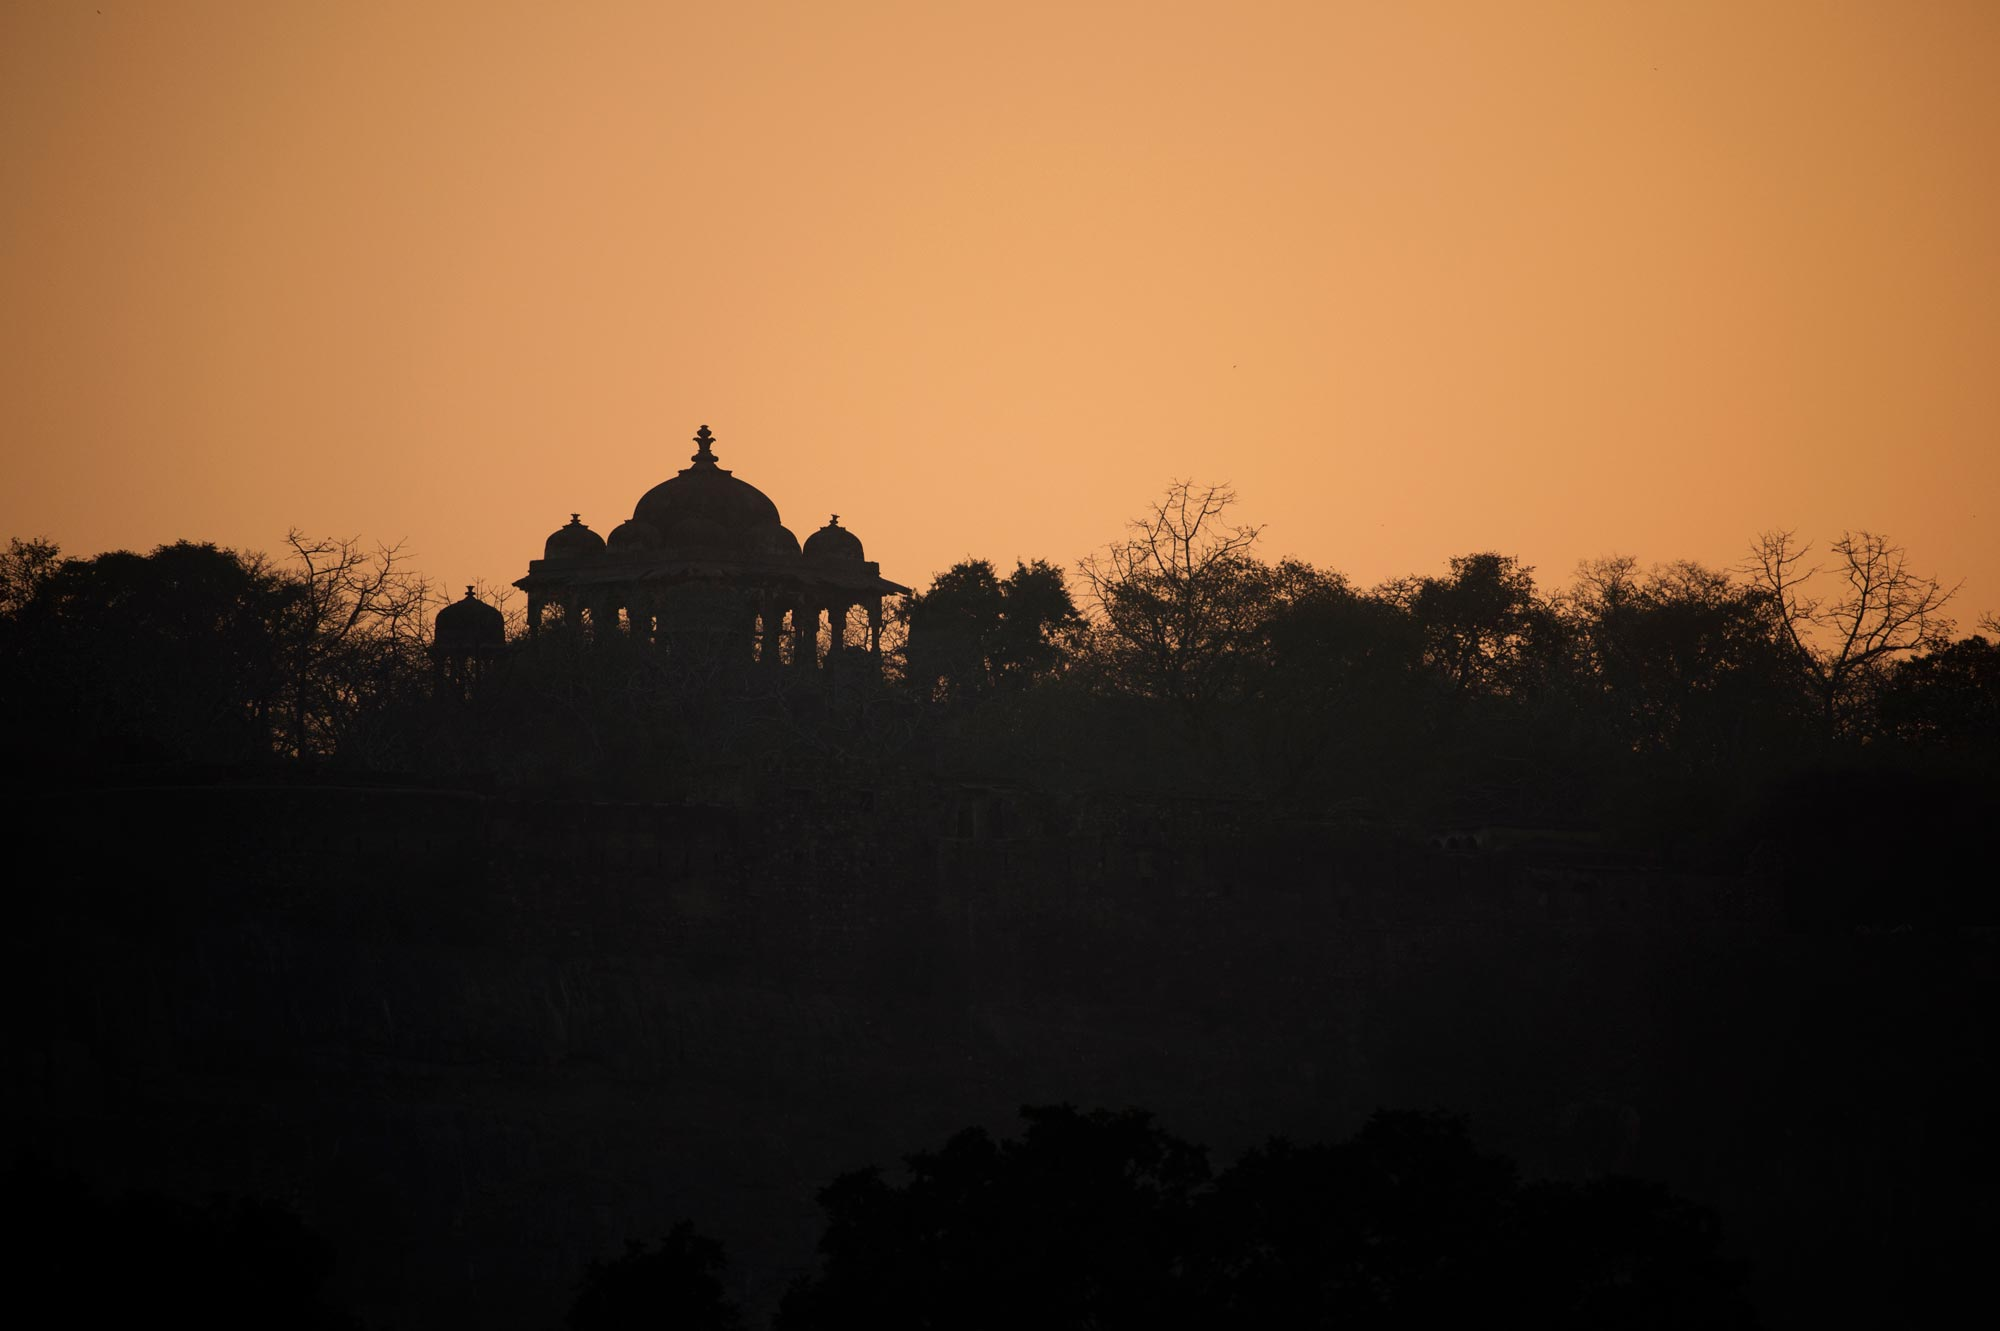 The Ranthambhore Fort